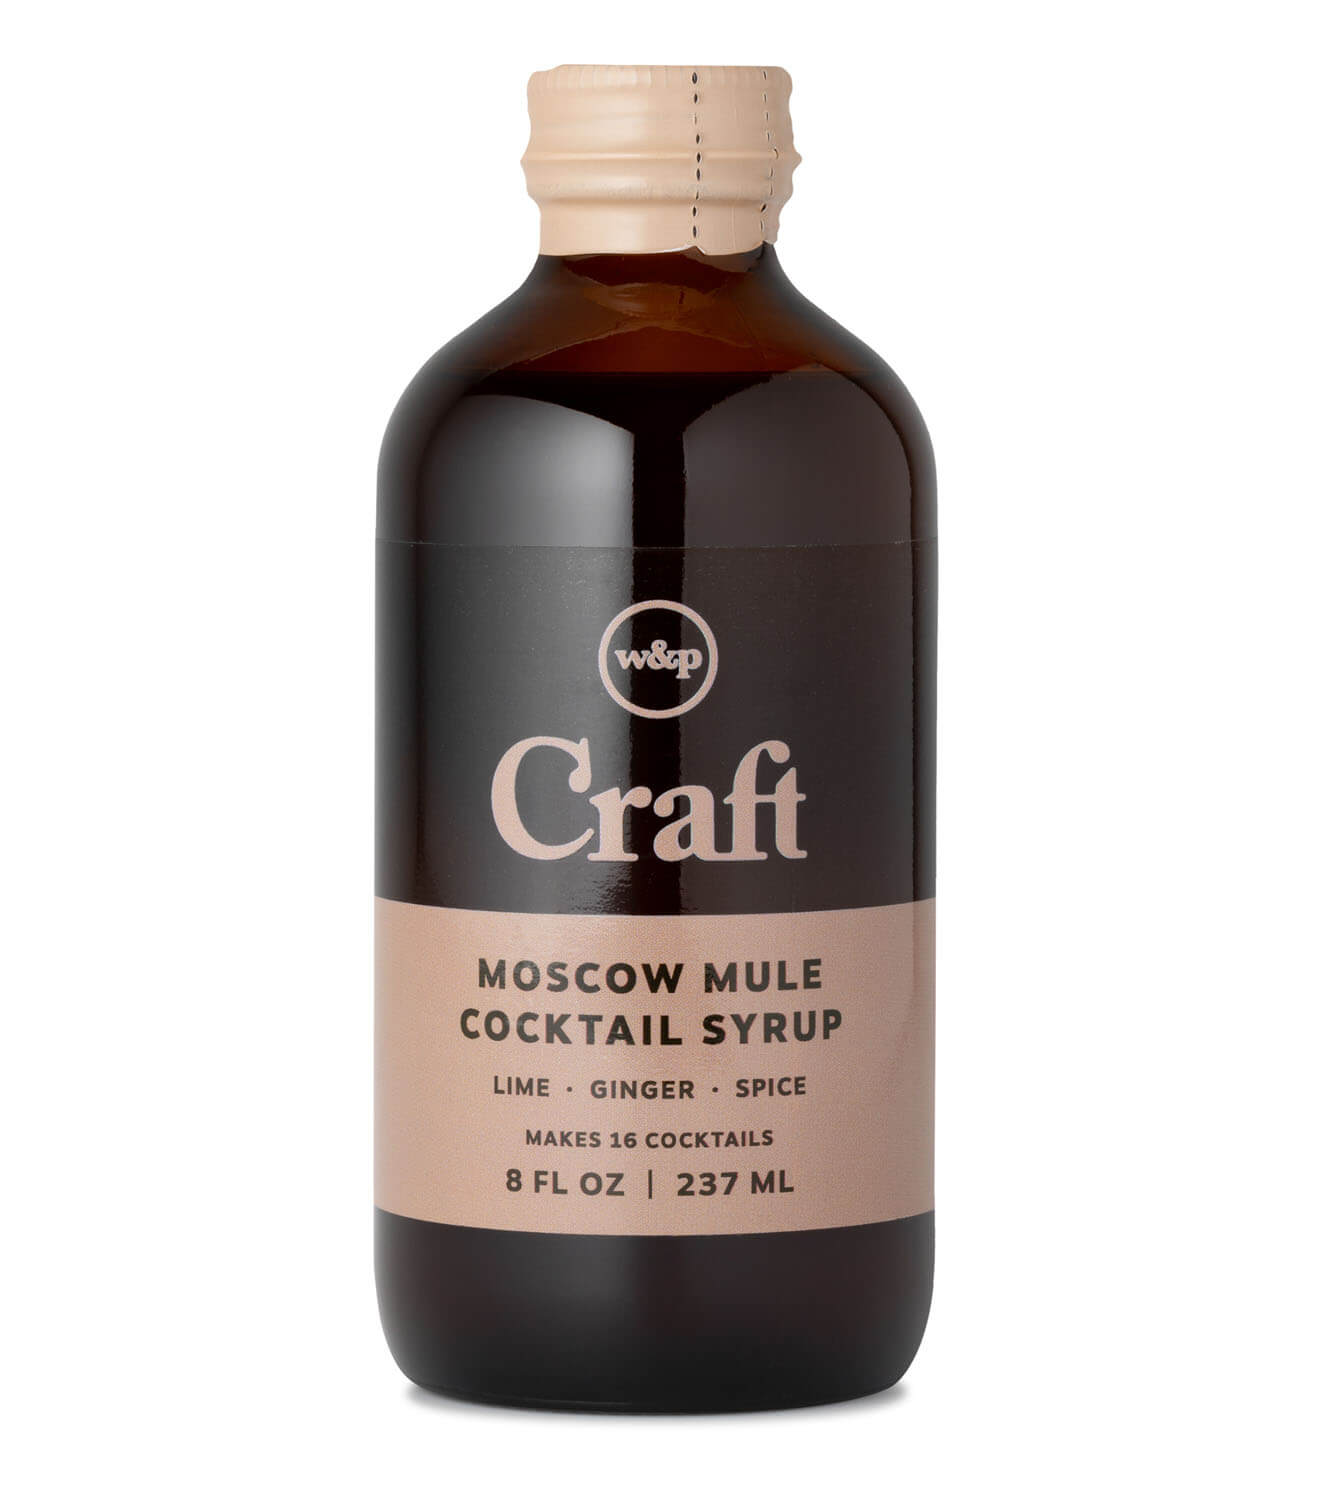 W&P Craft Cocktail Syrups